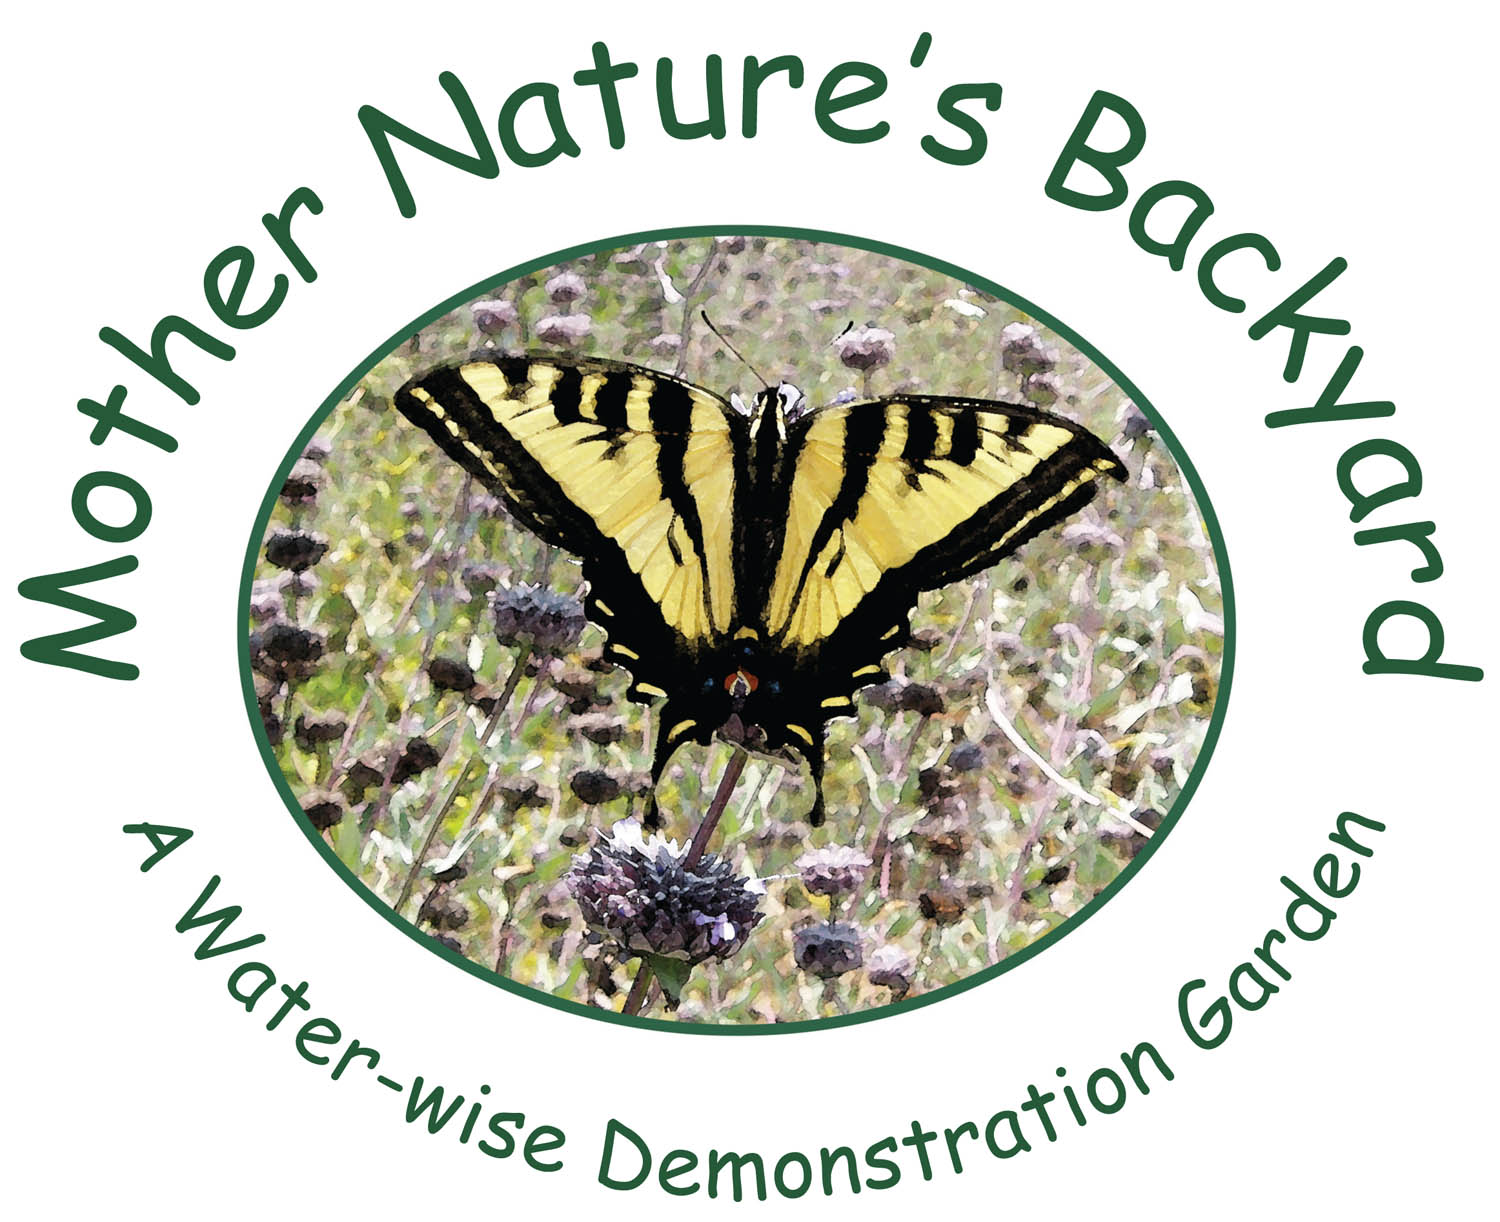 Mother Nature's Backyard logo - website opens in new window